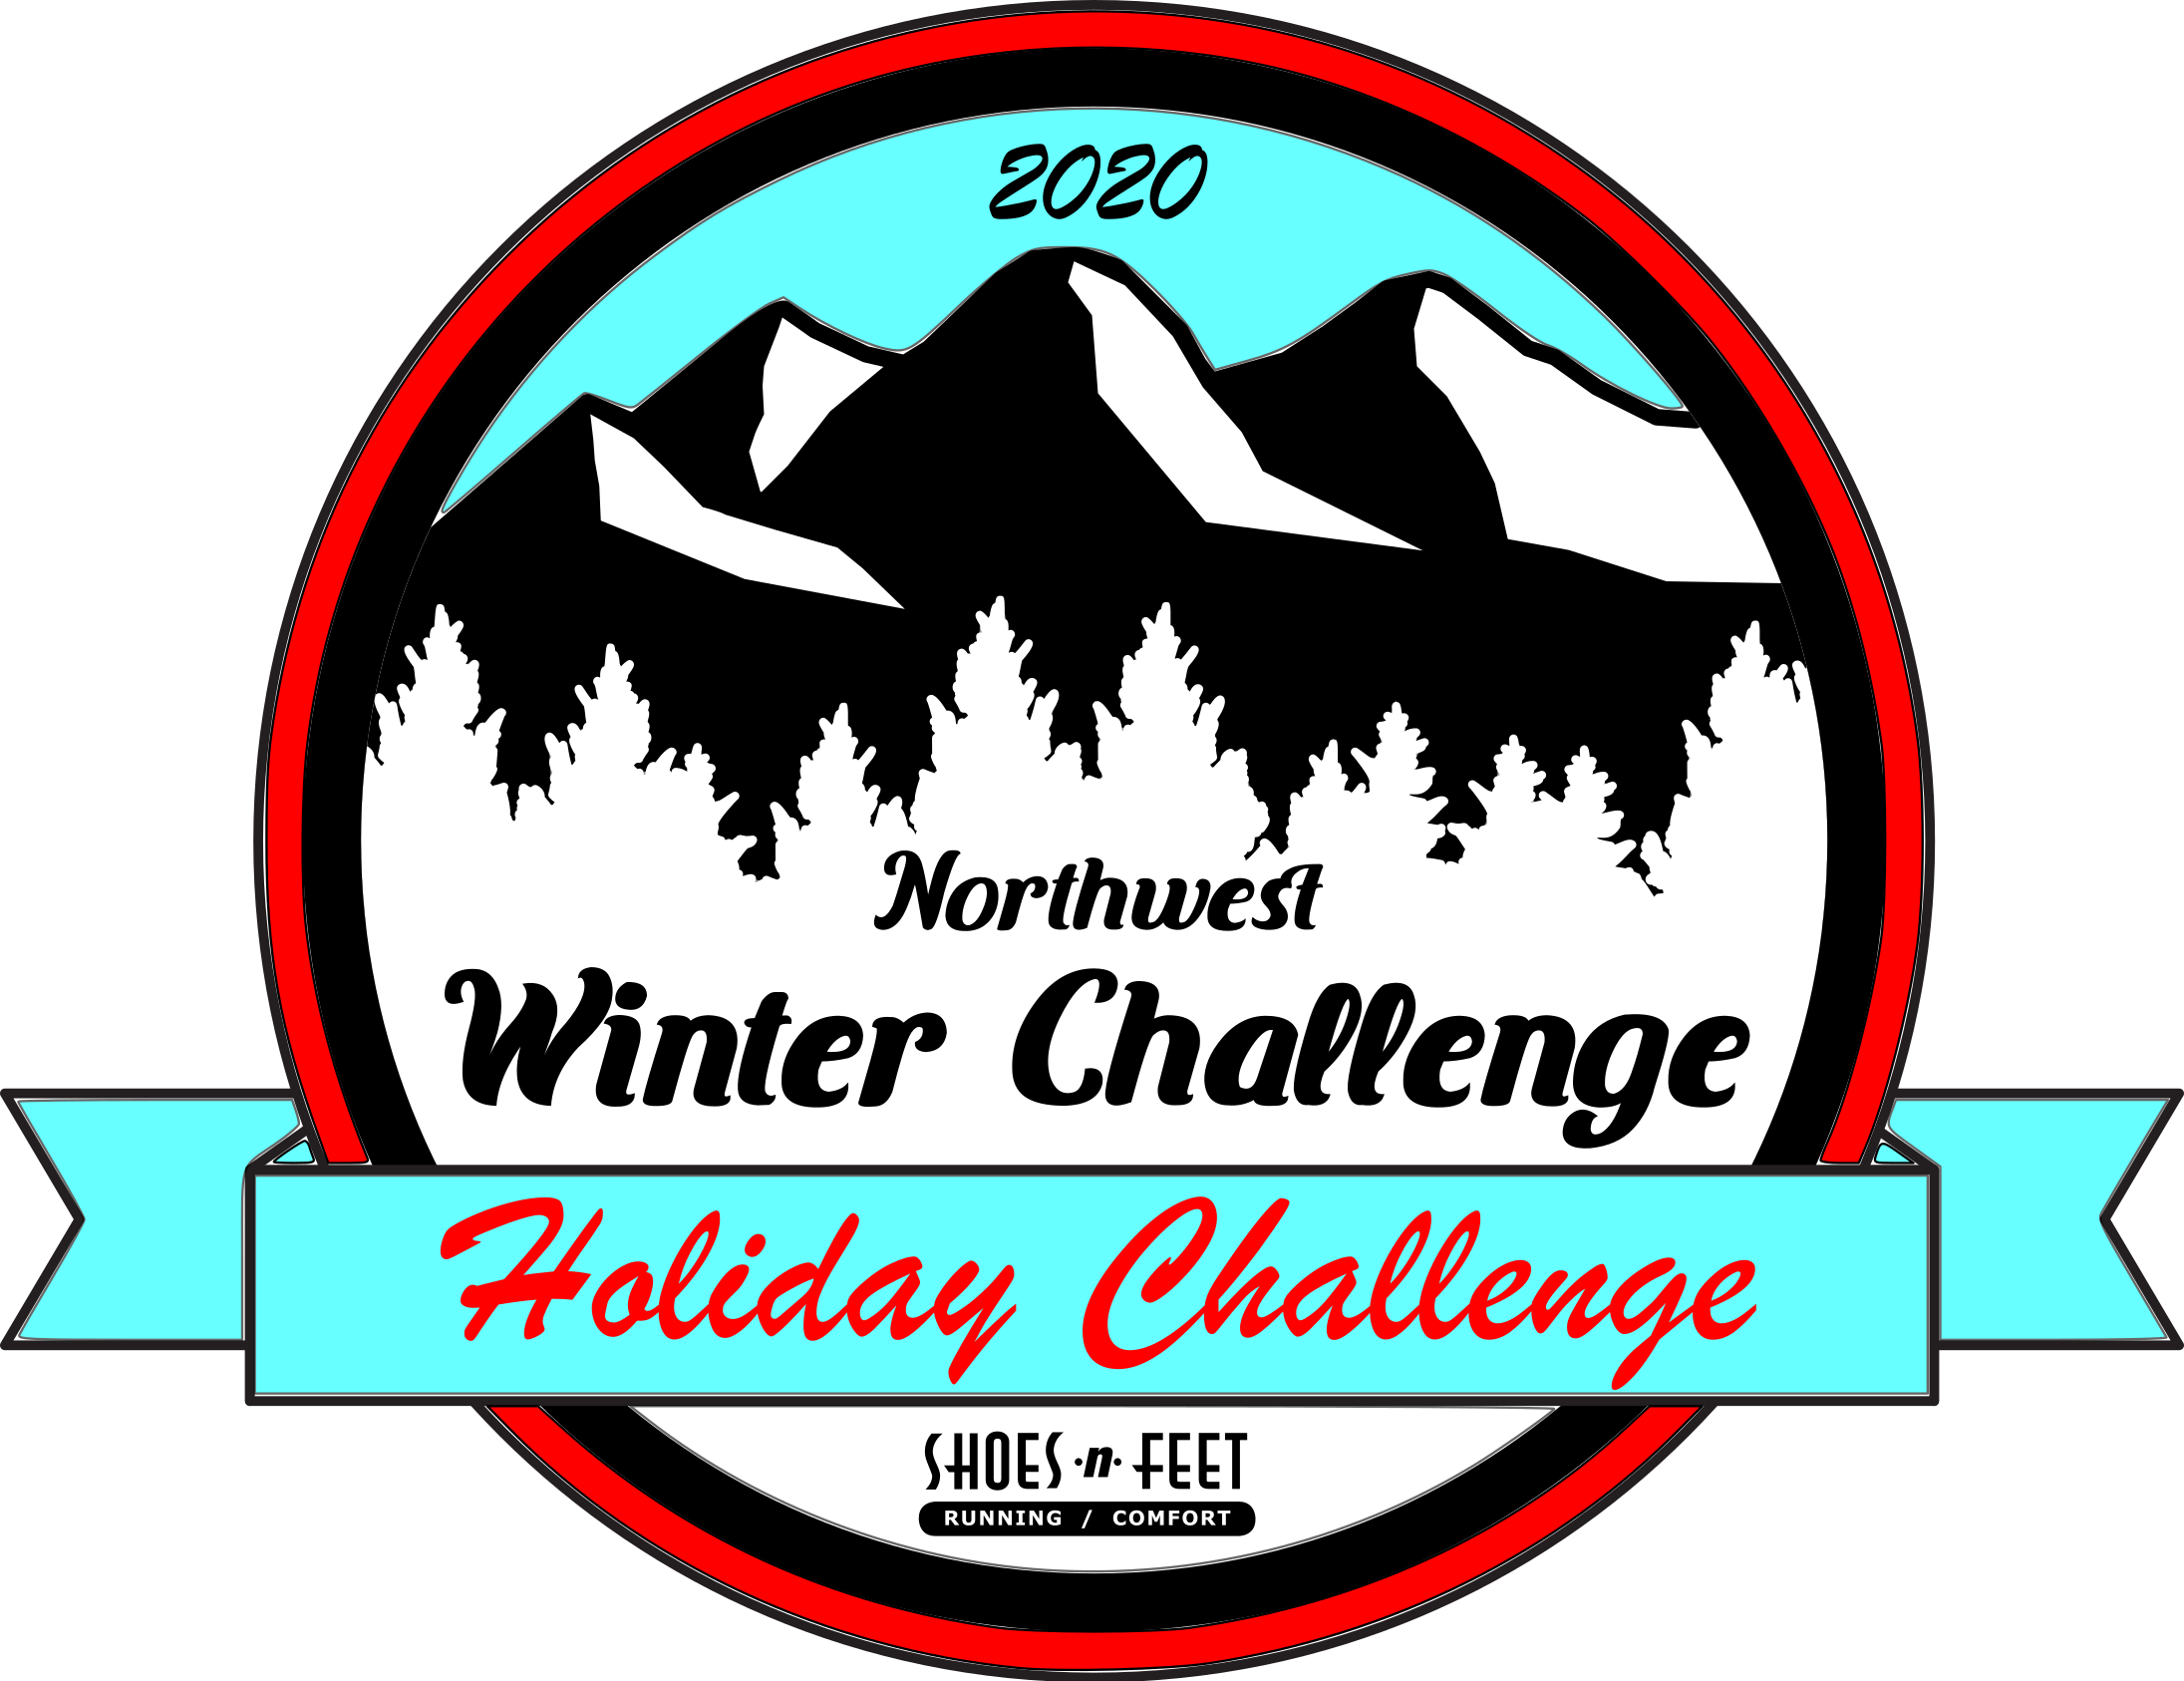 Northwest Winter Challenge Holiday Logo 2020